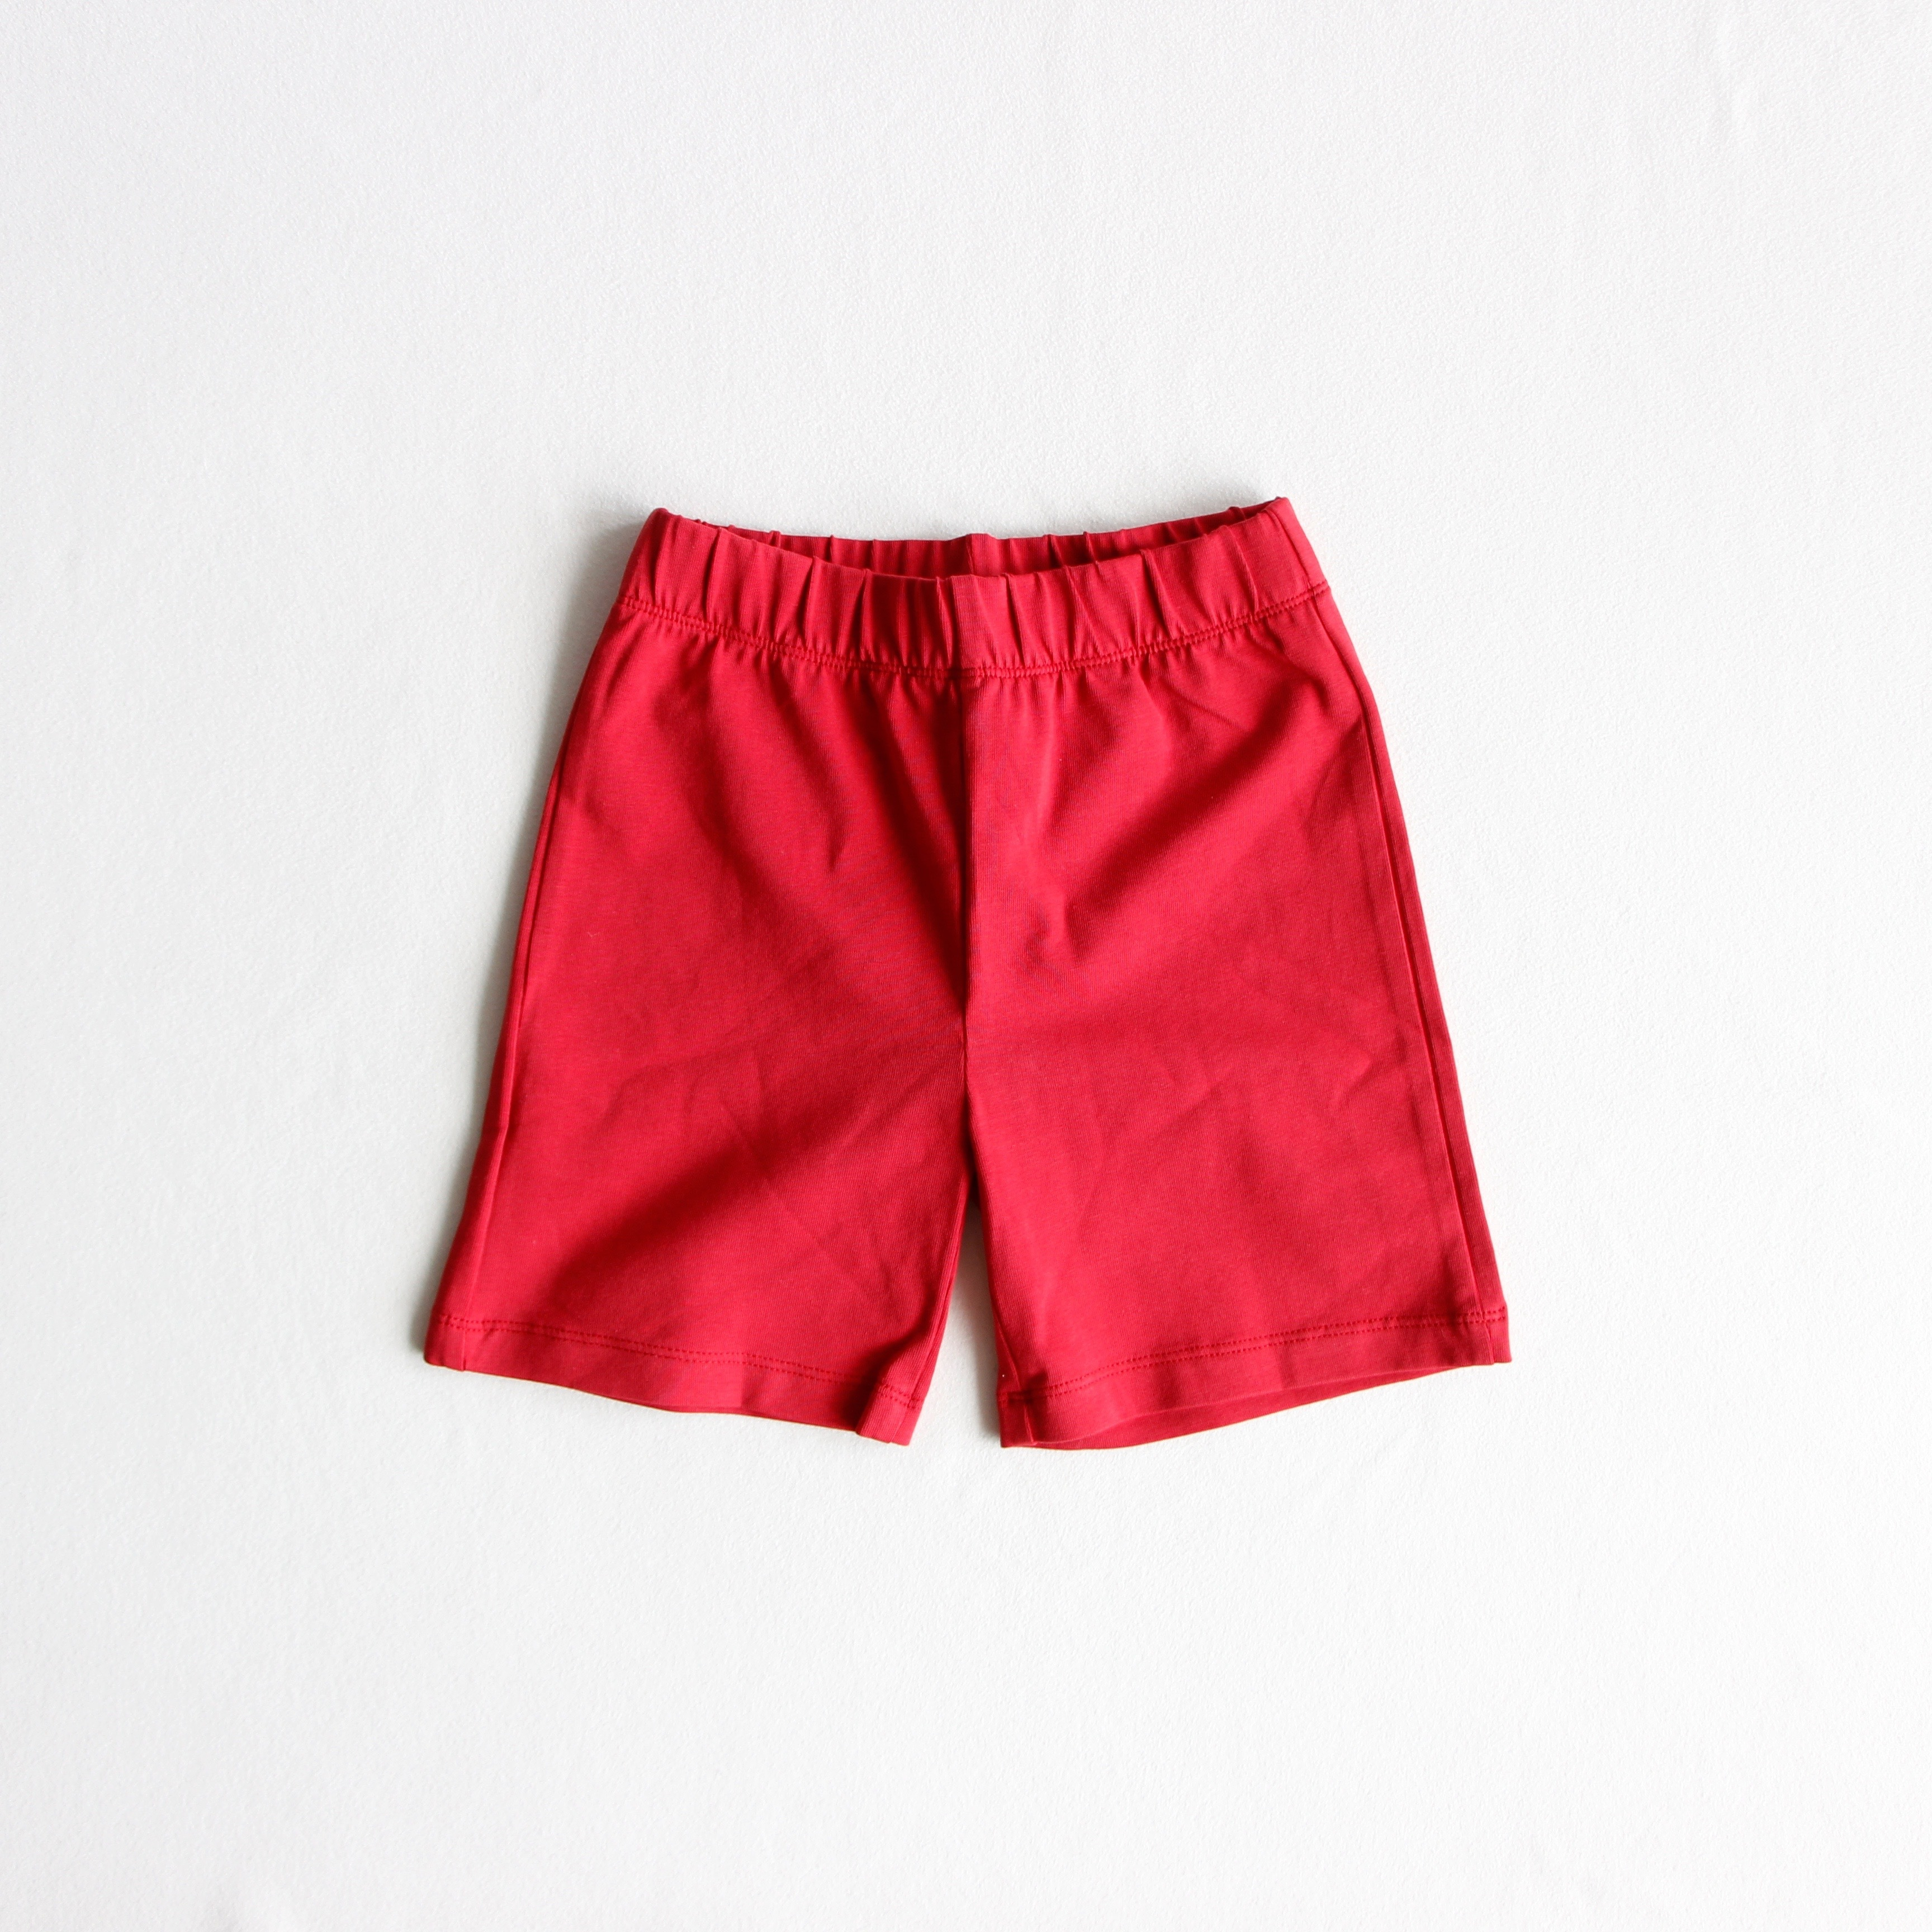 《WAWA 2019SS》SHORTS SOLID / spicy red